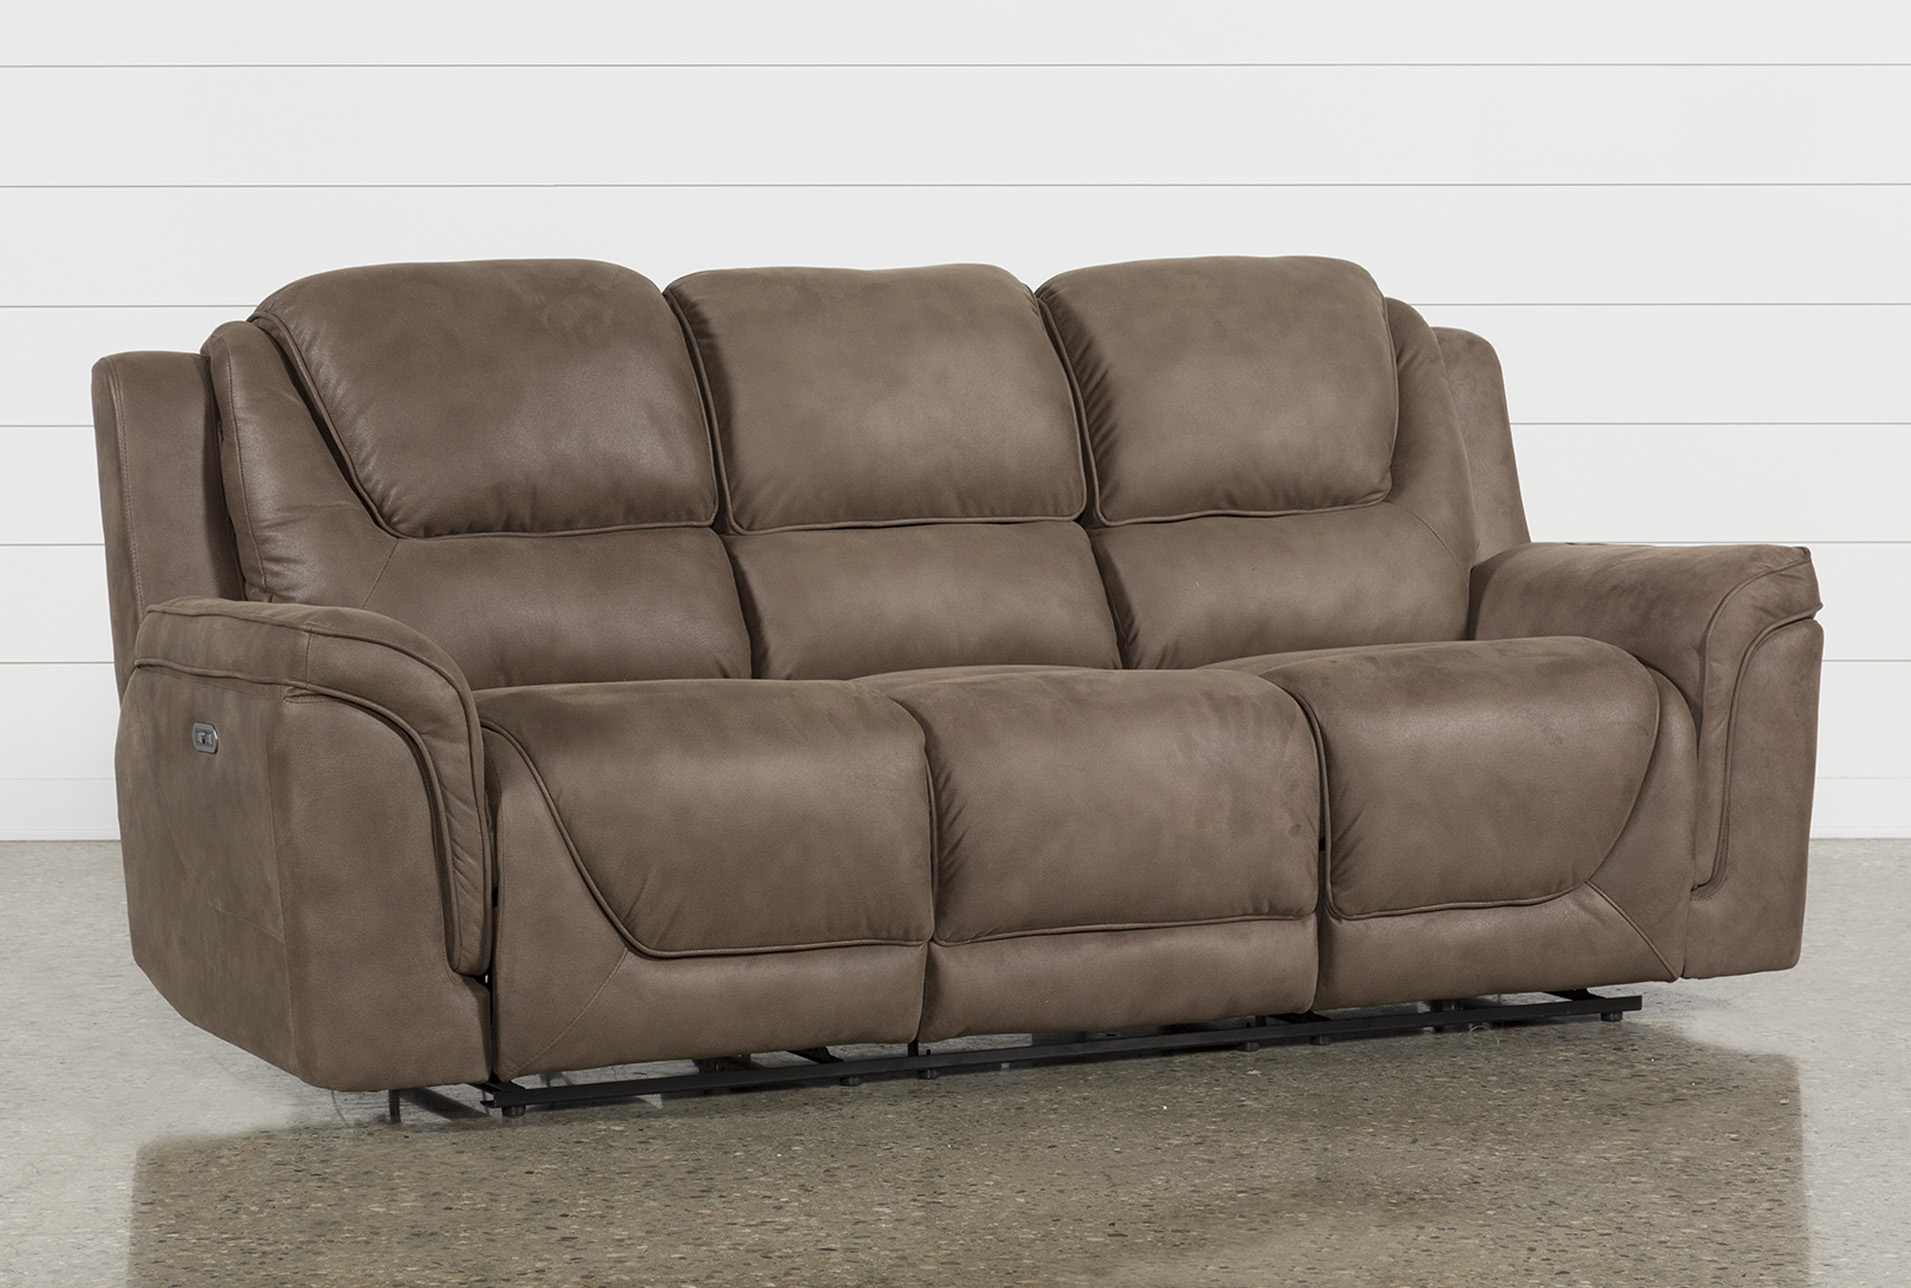 Ordinaire Denver Power Reclining Sofa With Power Headrest U0026amp; Usb (Qty: 1) Has Been  Successfully Added To Your Cart.